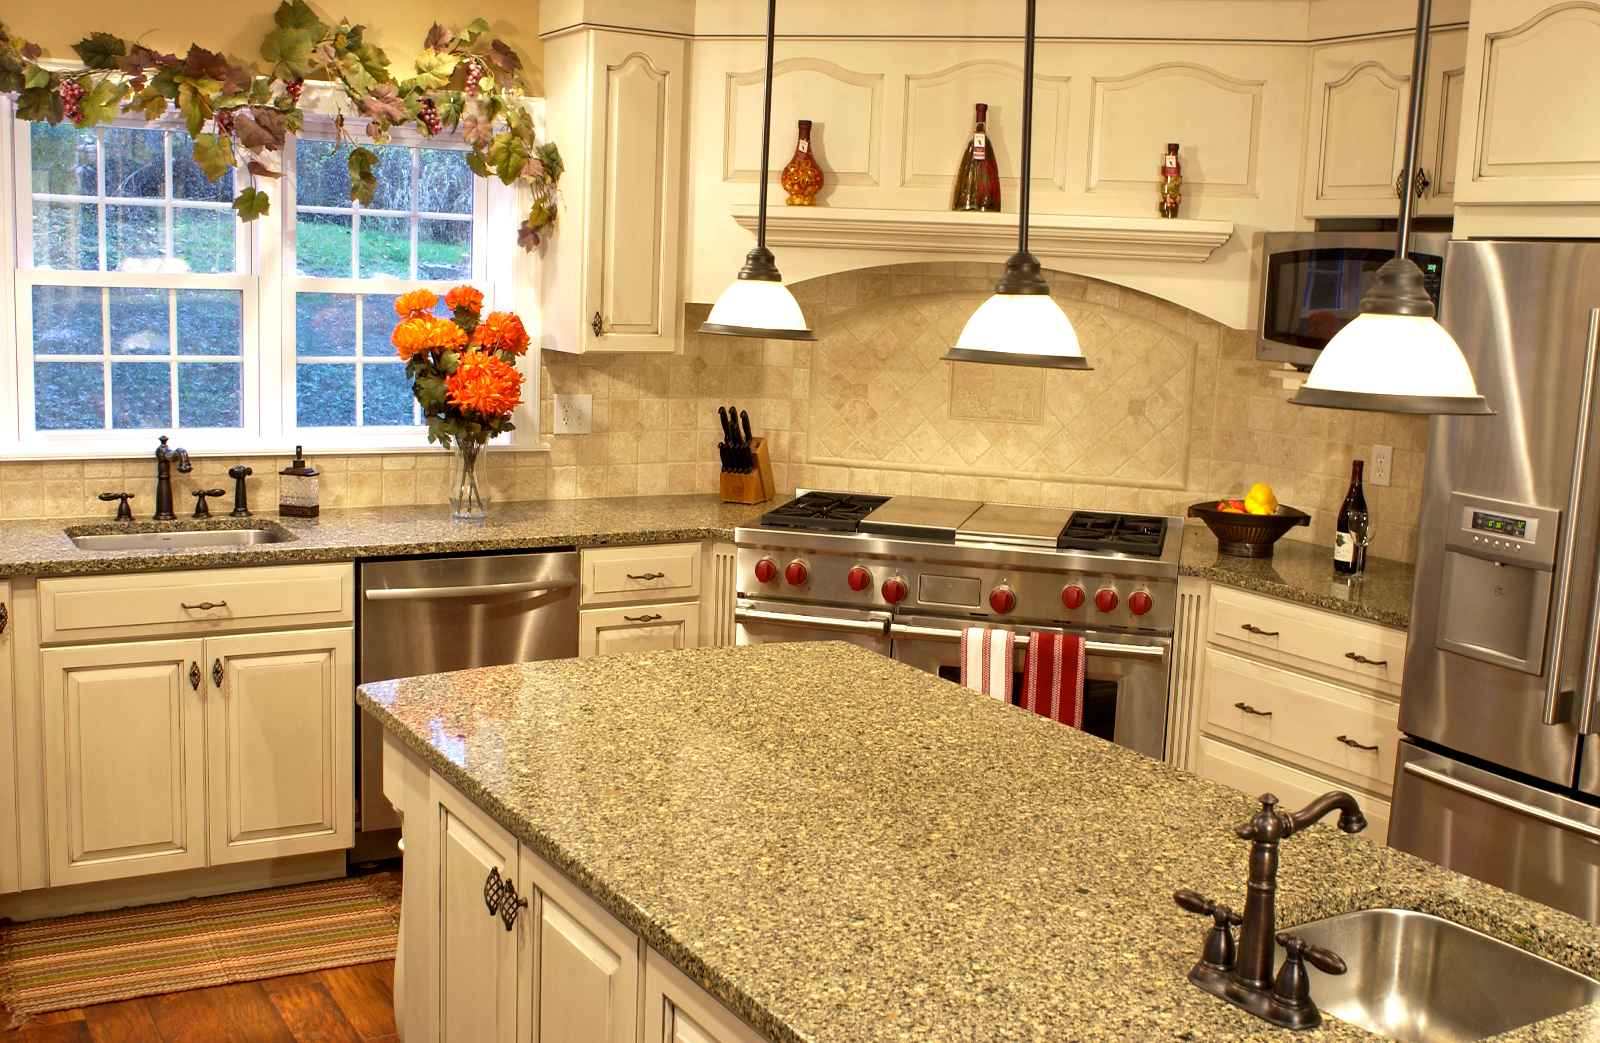 Cheap Countertop Ideas Kitchen | Feel The Home on Kitchen Counter Decor Modern  id=82785